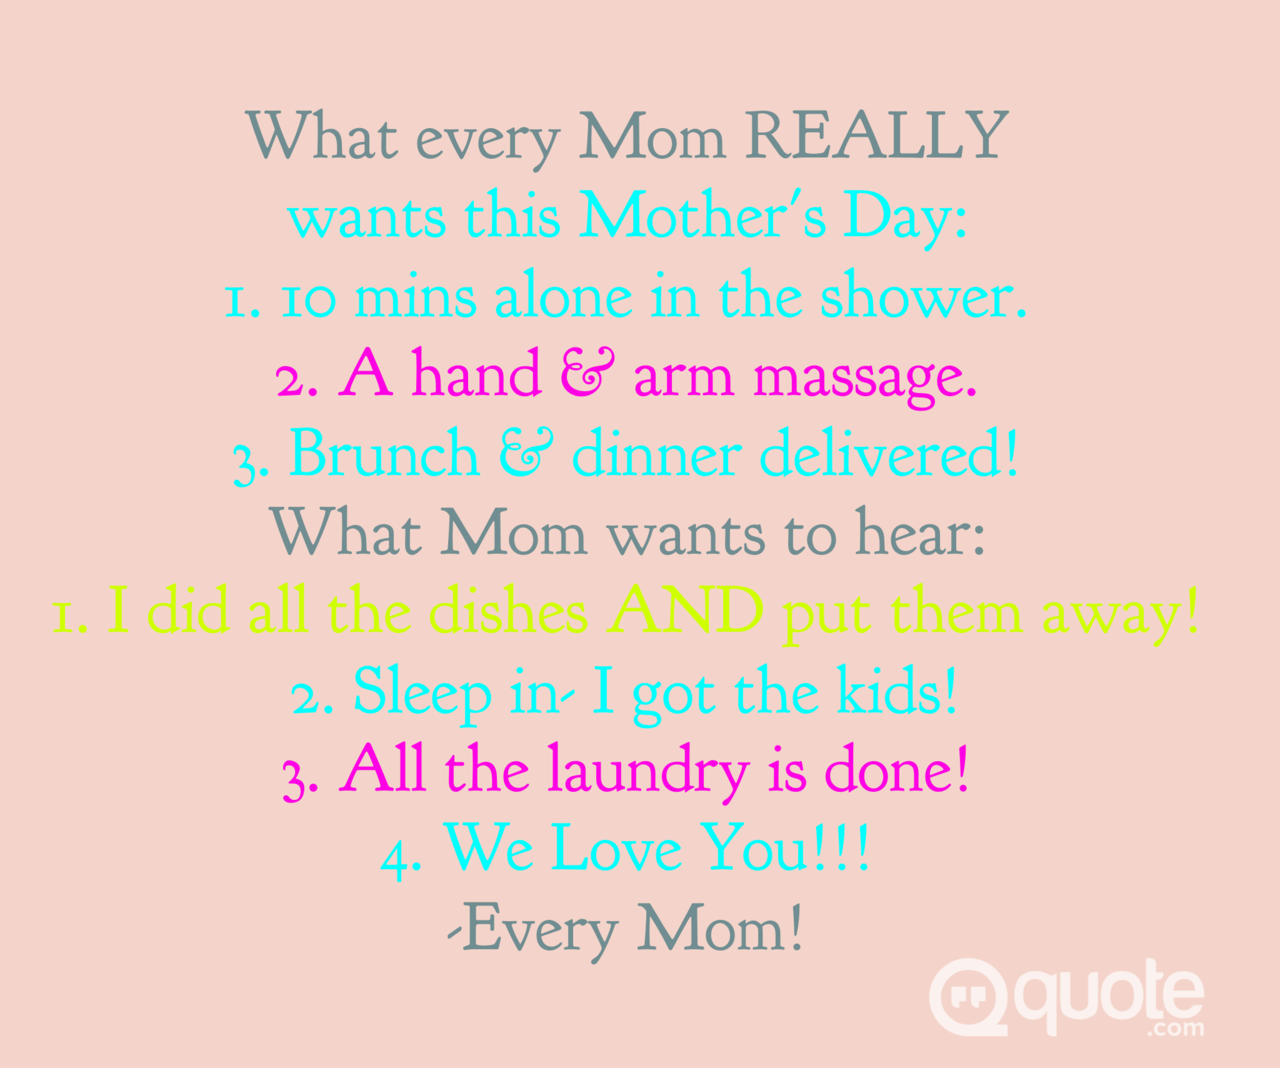 We Love You Mom Quotes If You Didn't Know Mothersday Is This Sunday And There Is Still